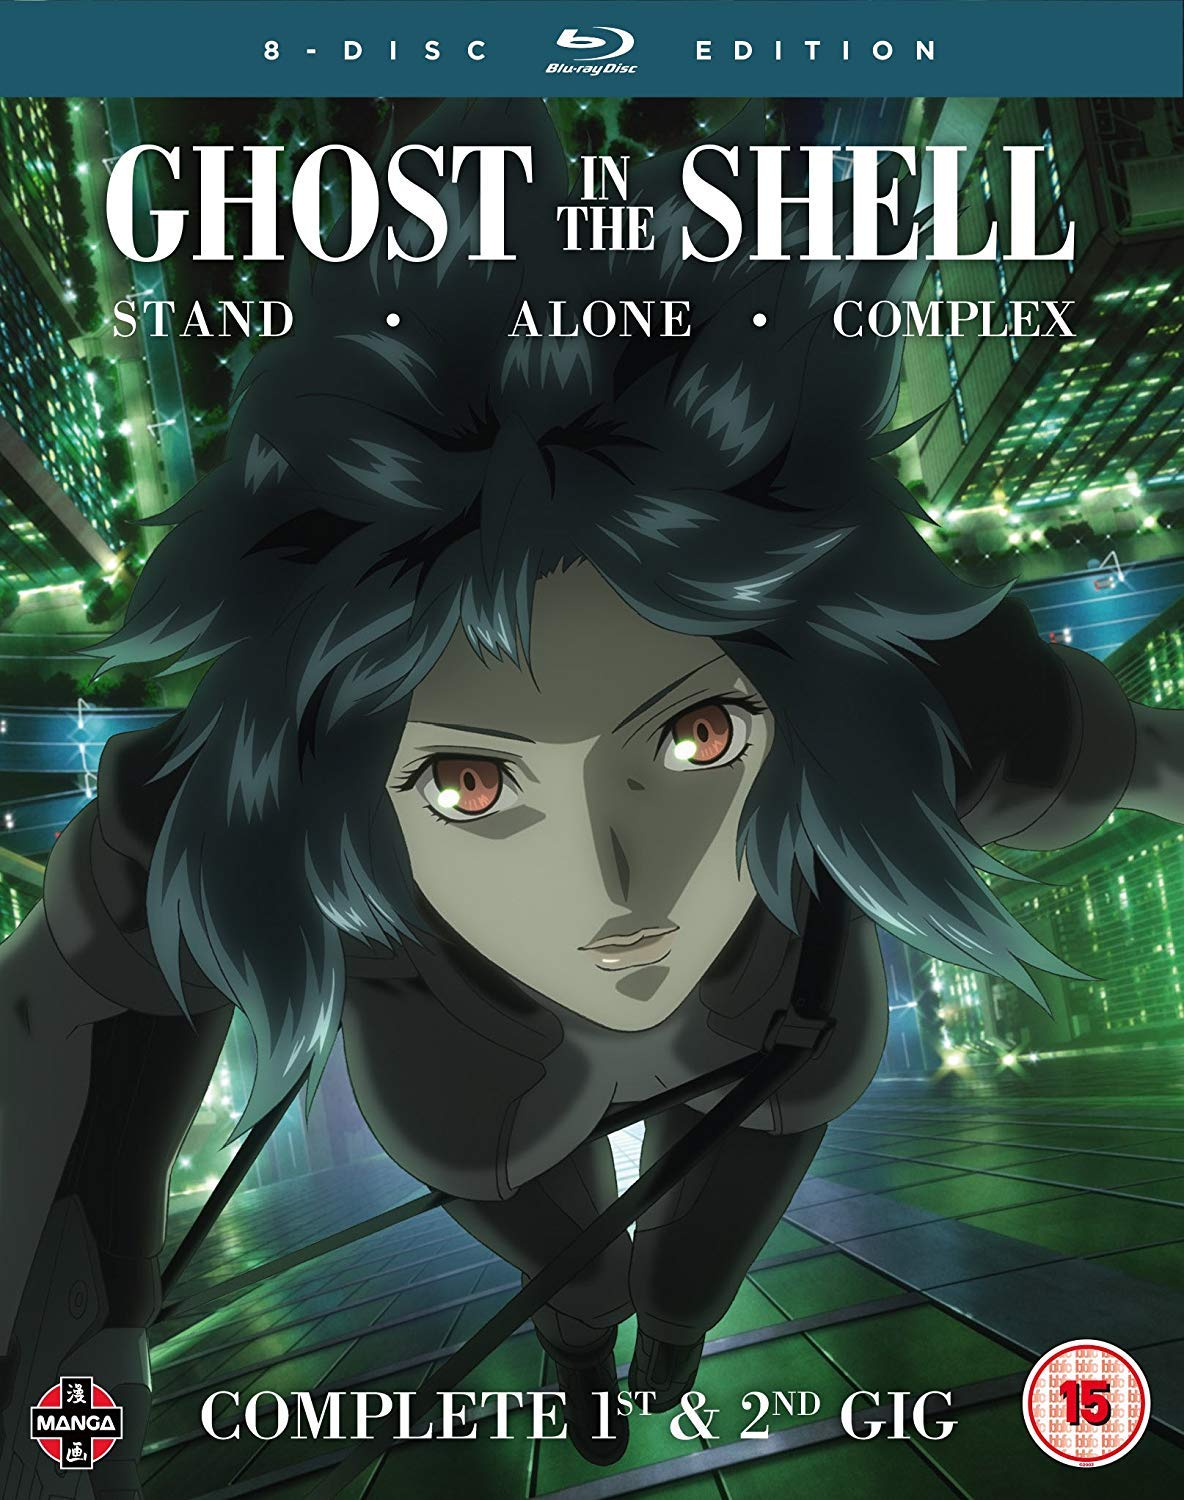 Amazon Com Ghost In The Shell Stand Alone Complex Complete Series Collection Blu Ray Shiro Saito Mary Elizabeth Mcglynn William Frederick Knight Richard Epcar Crispin Freeman Peggy O Neal Dino Andrade Kevin Brief Loy